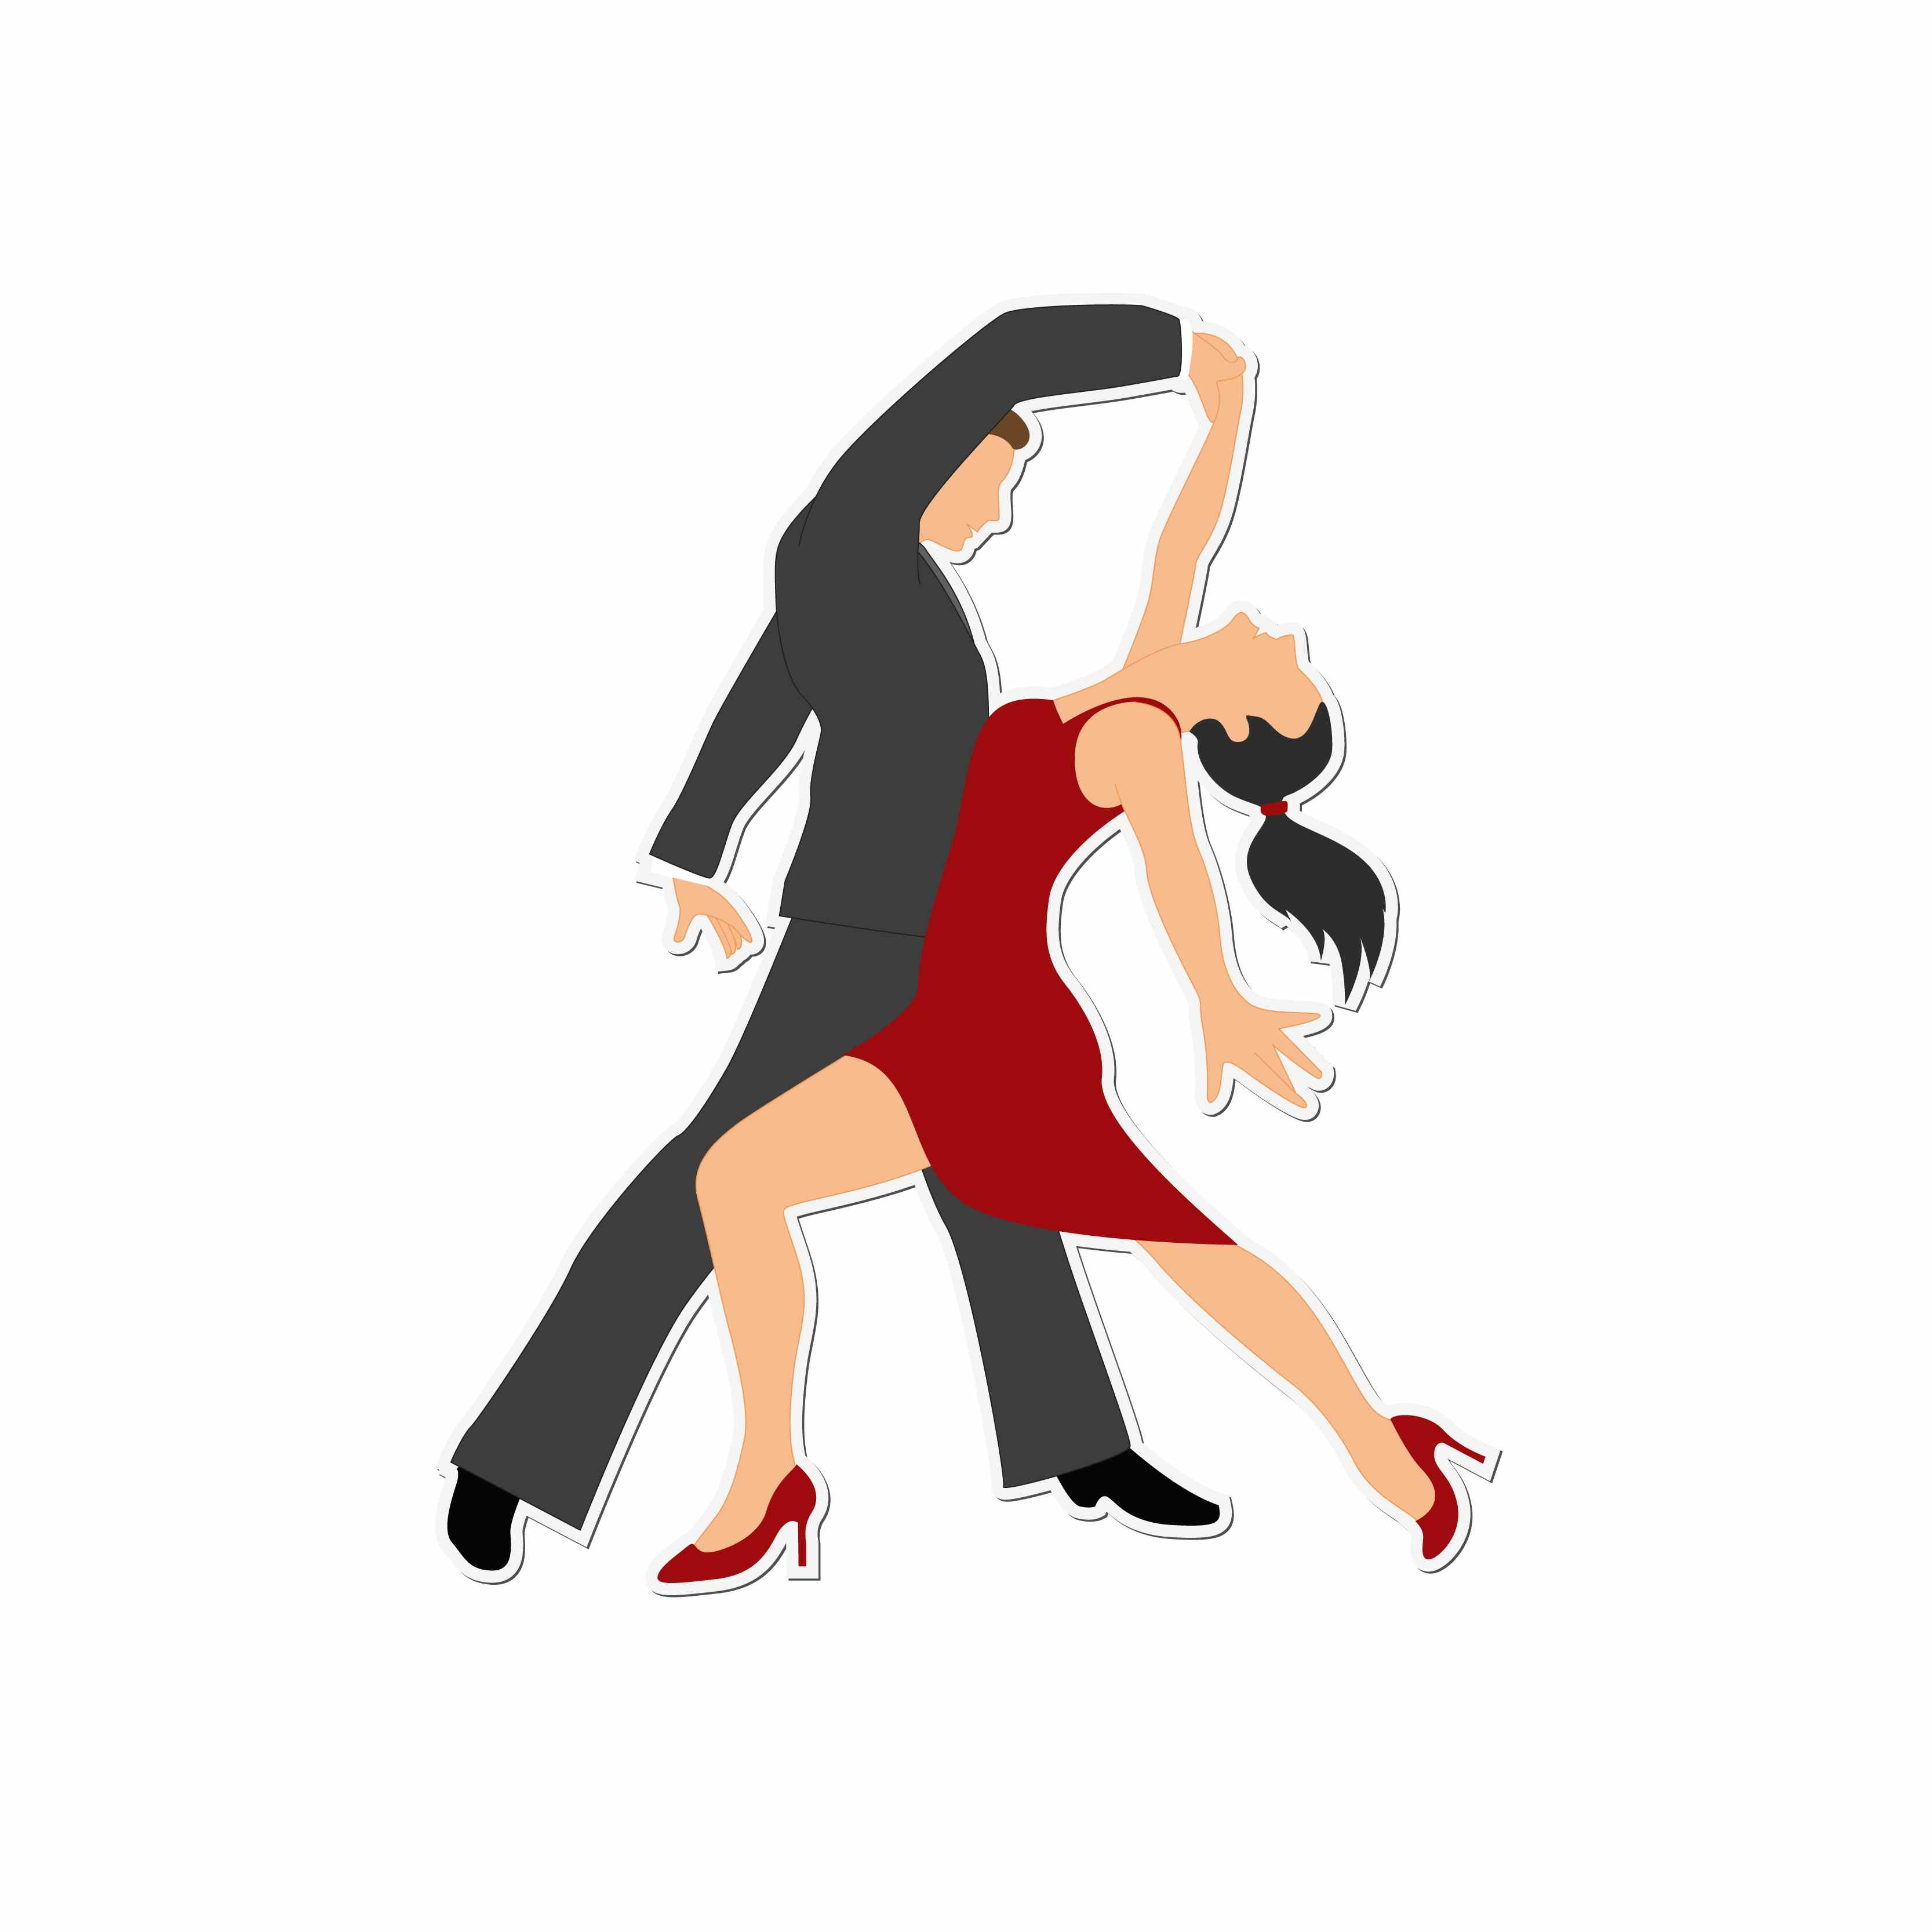 Swing dancing silhouette at. Dancer clipart ballroom dance free